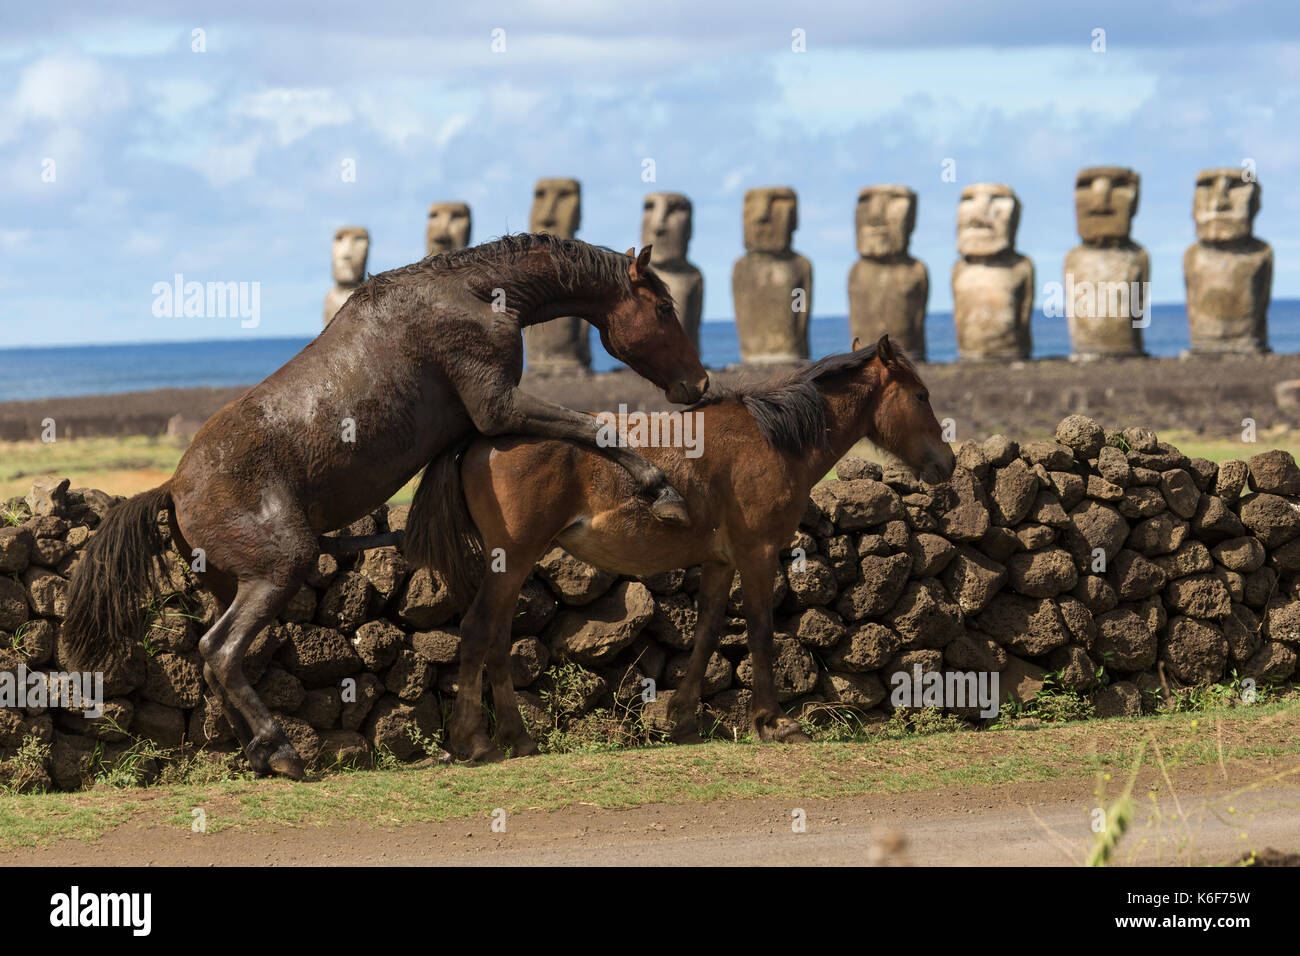 Wild horses on Easter Island, Chile - Stock Image